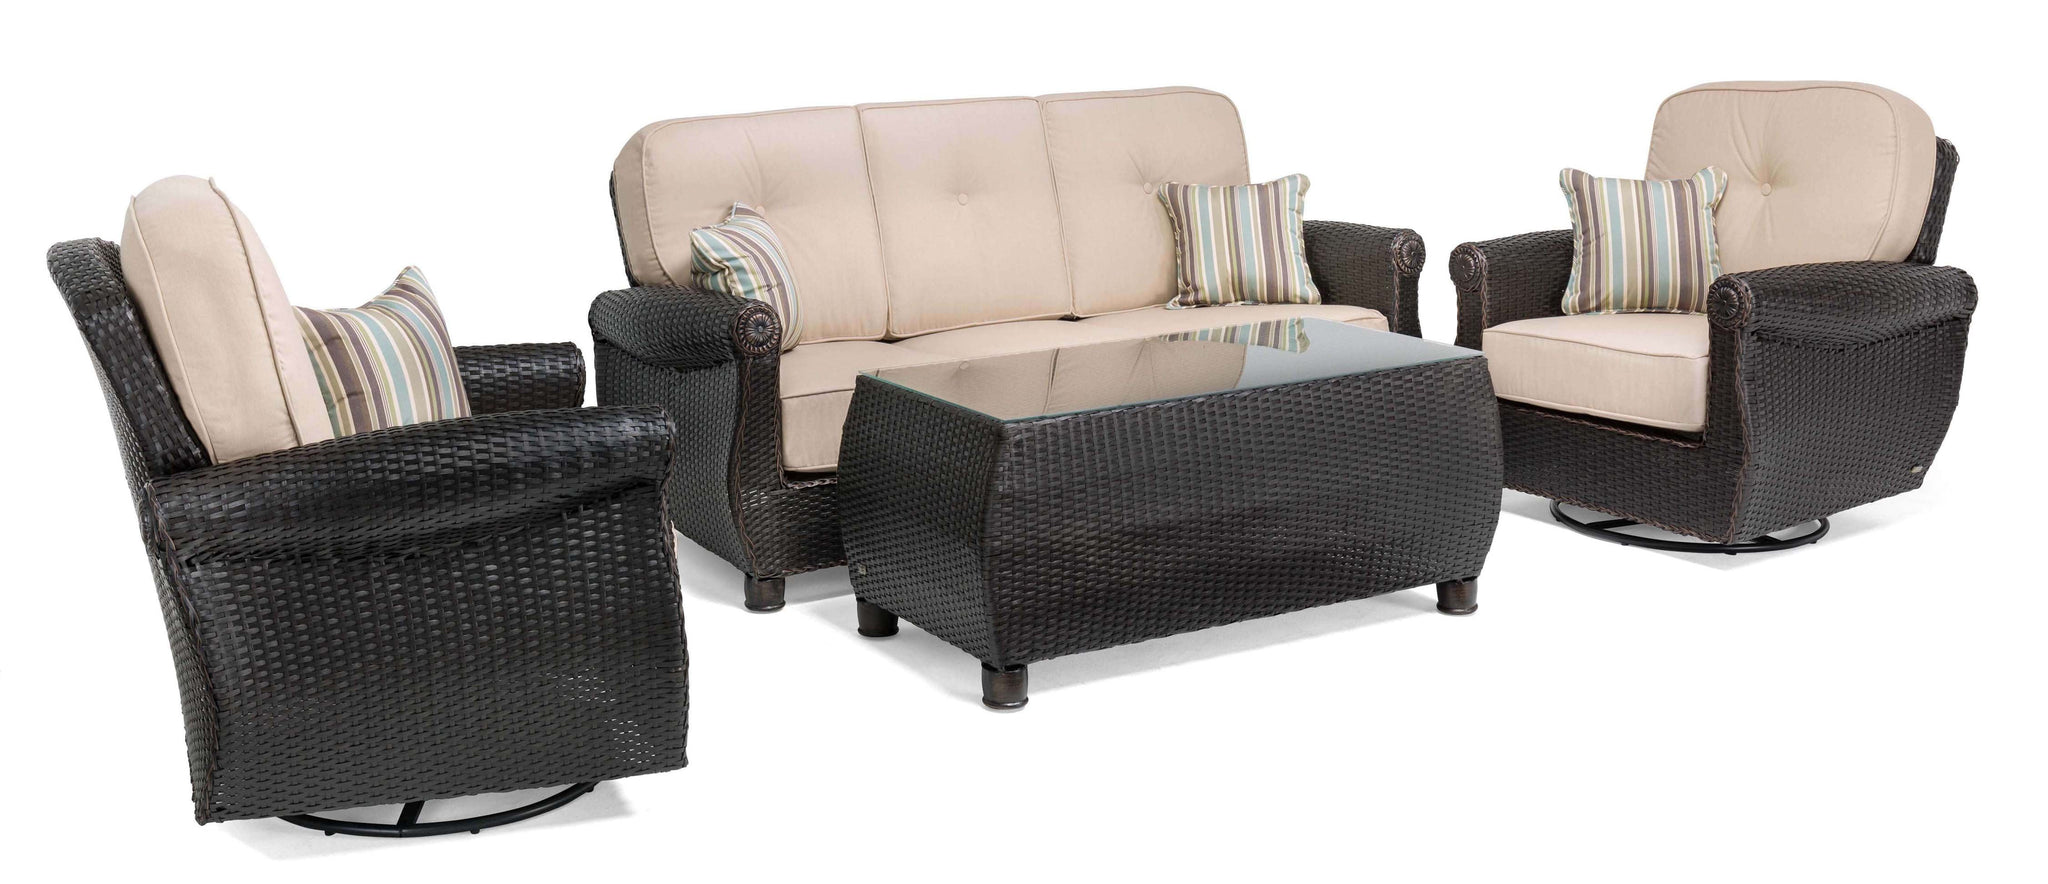 Breckenridge Tan 4 Pc Patio Furniture Set Swivel Rockers